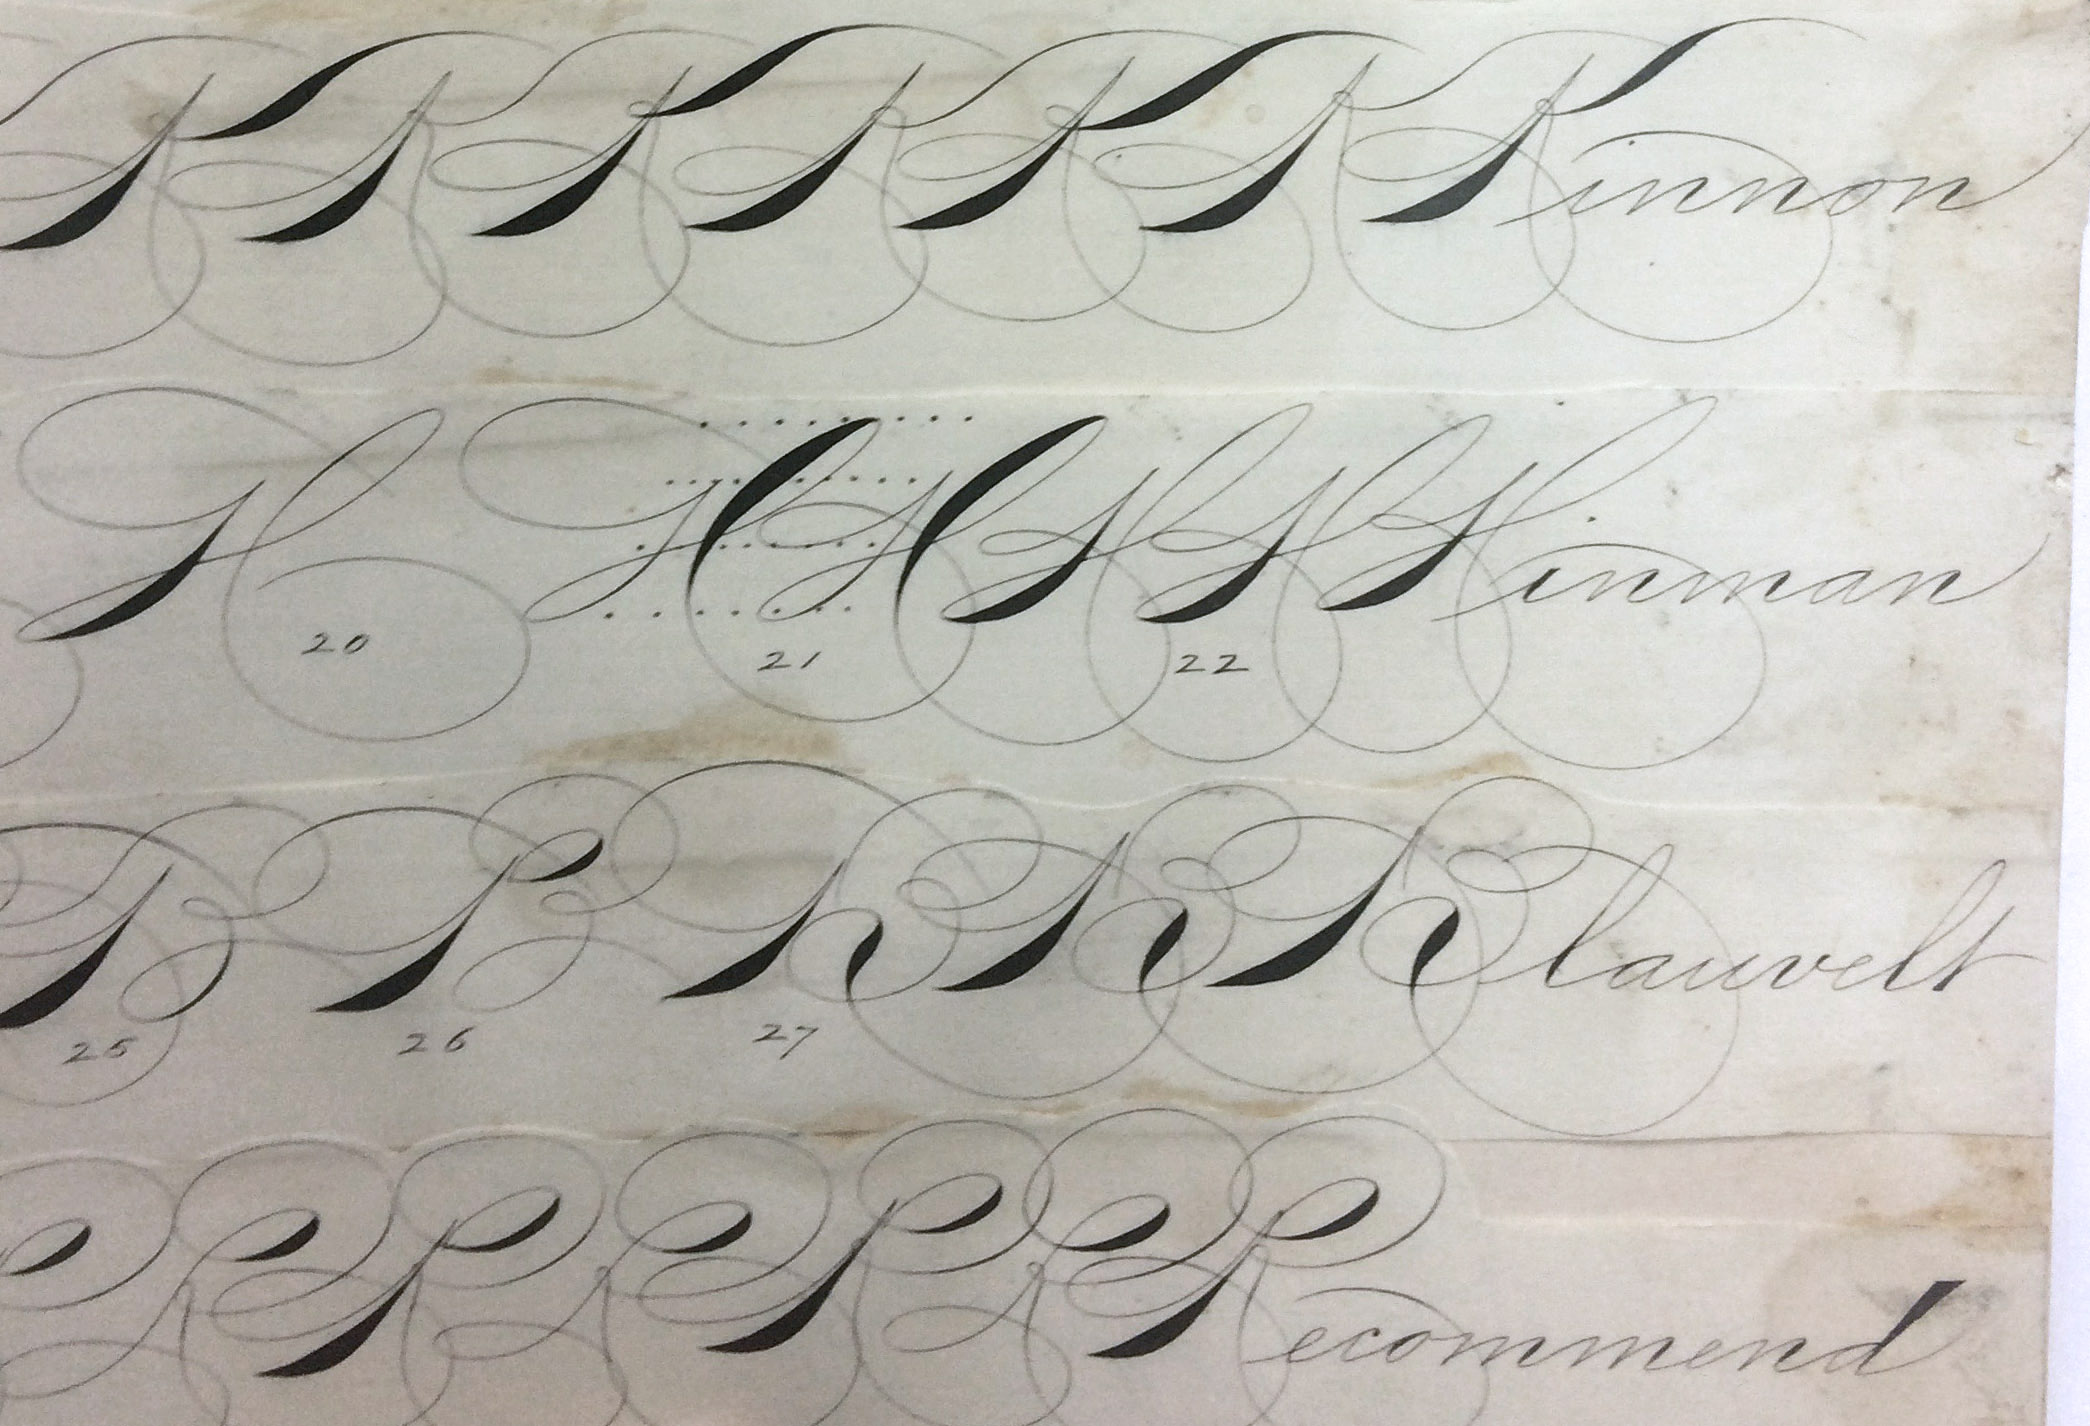 penmaship_specimens_letterforms_01.jpg